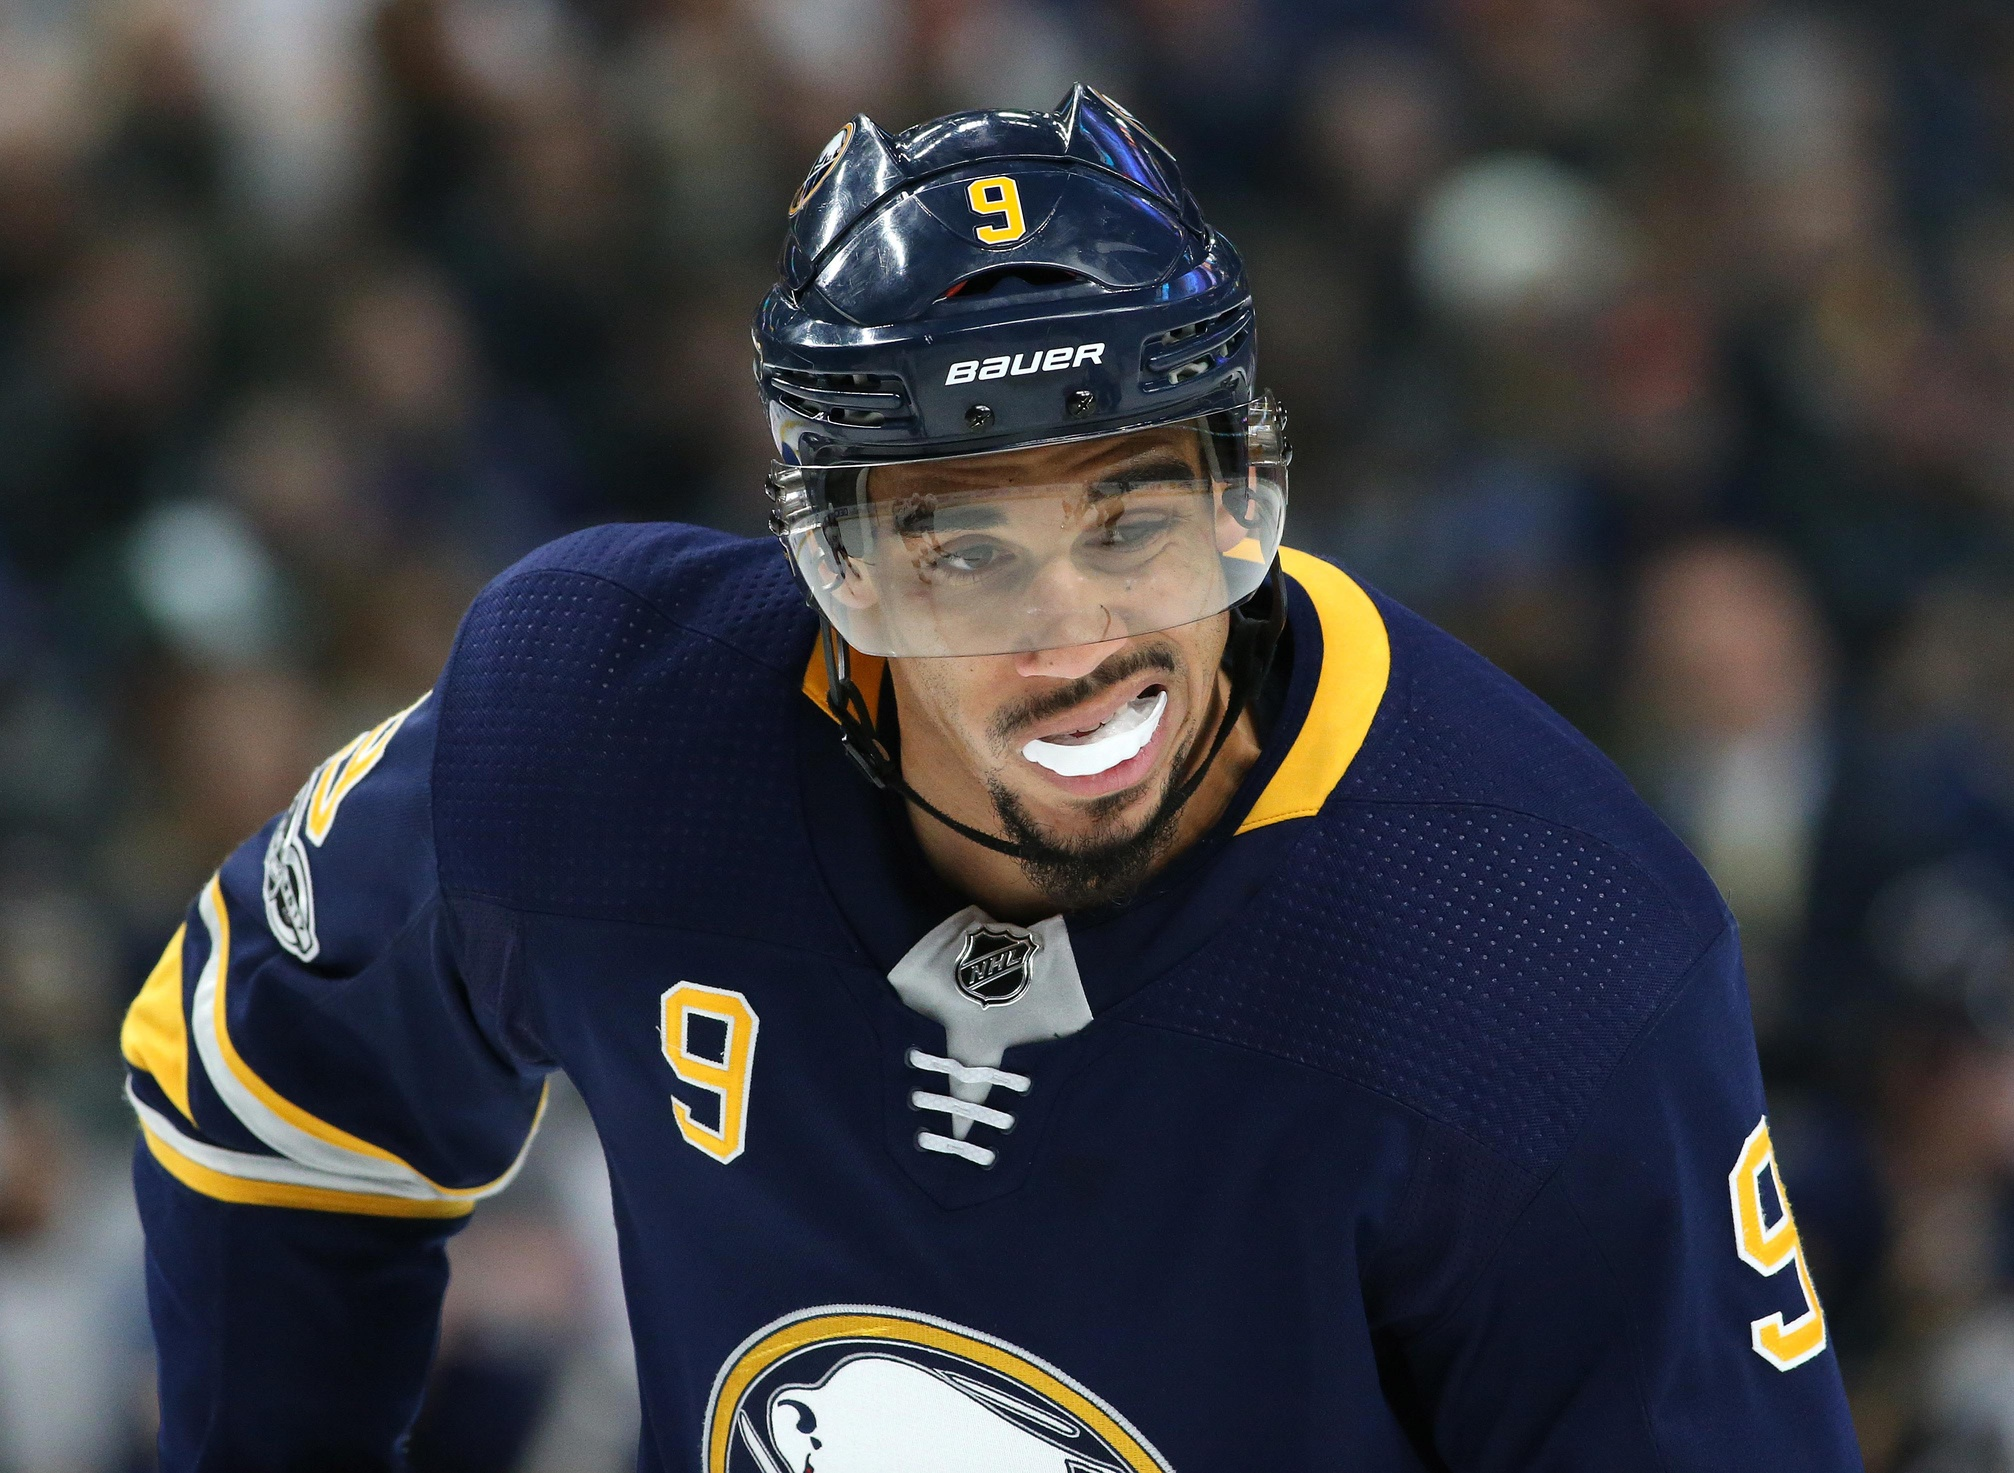 The Blues are reportedly interested in Evander Kane